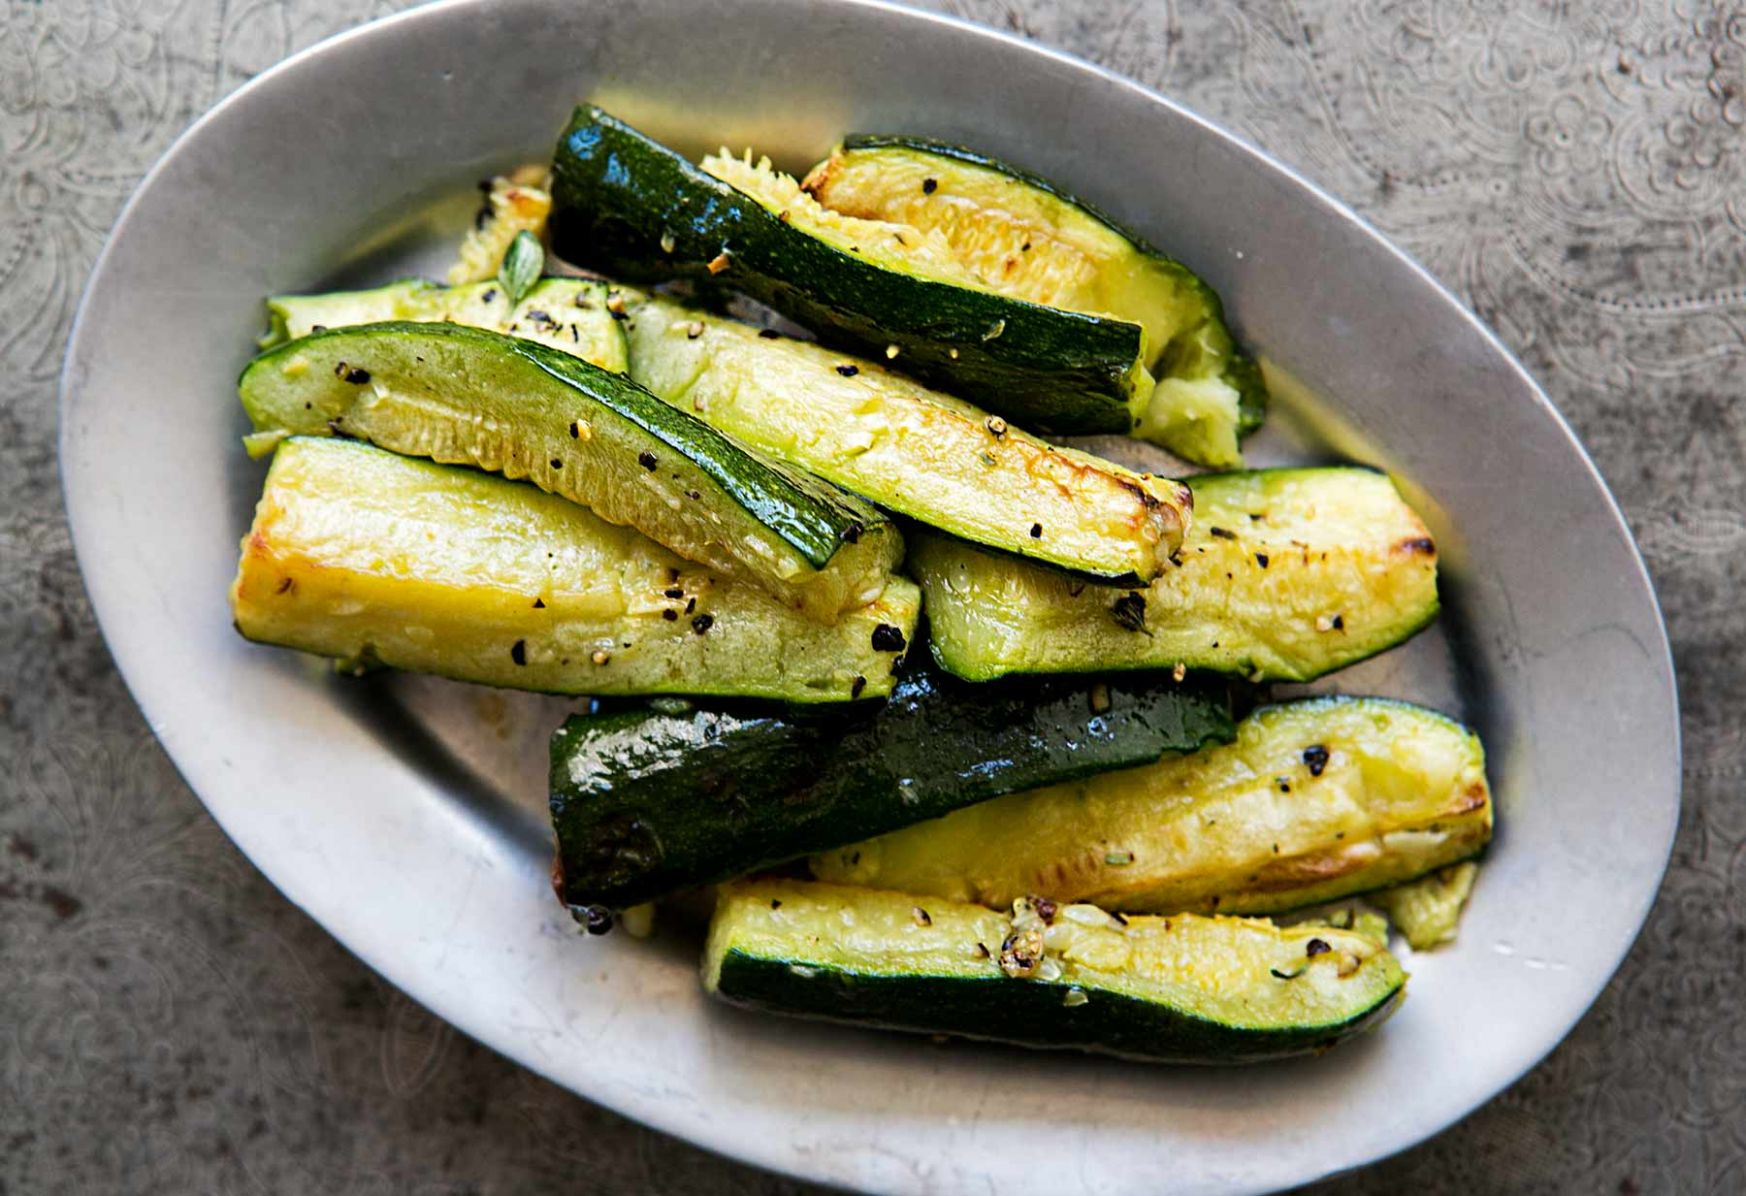 Roasted Zucchini with Garlic